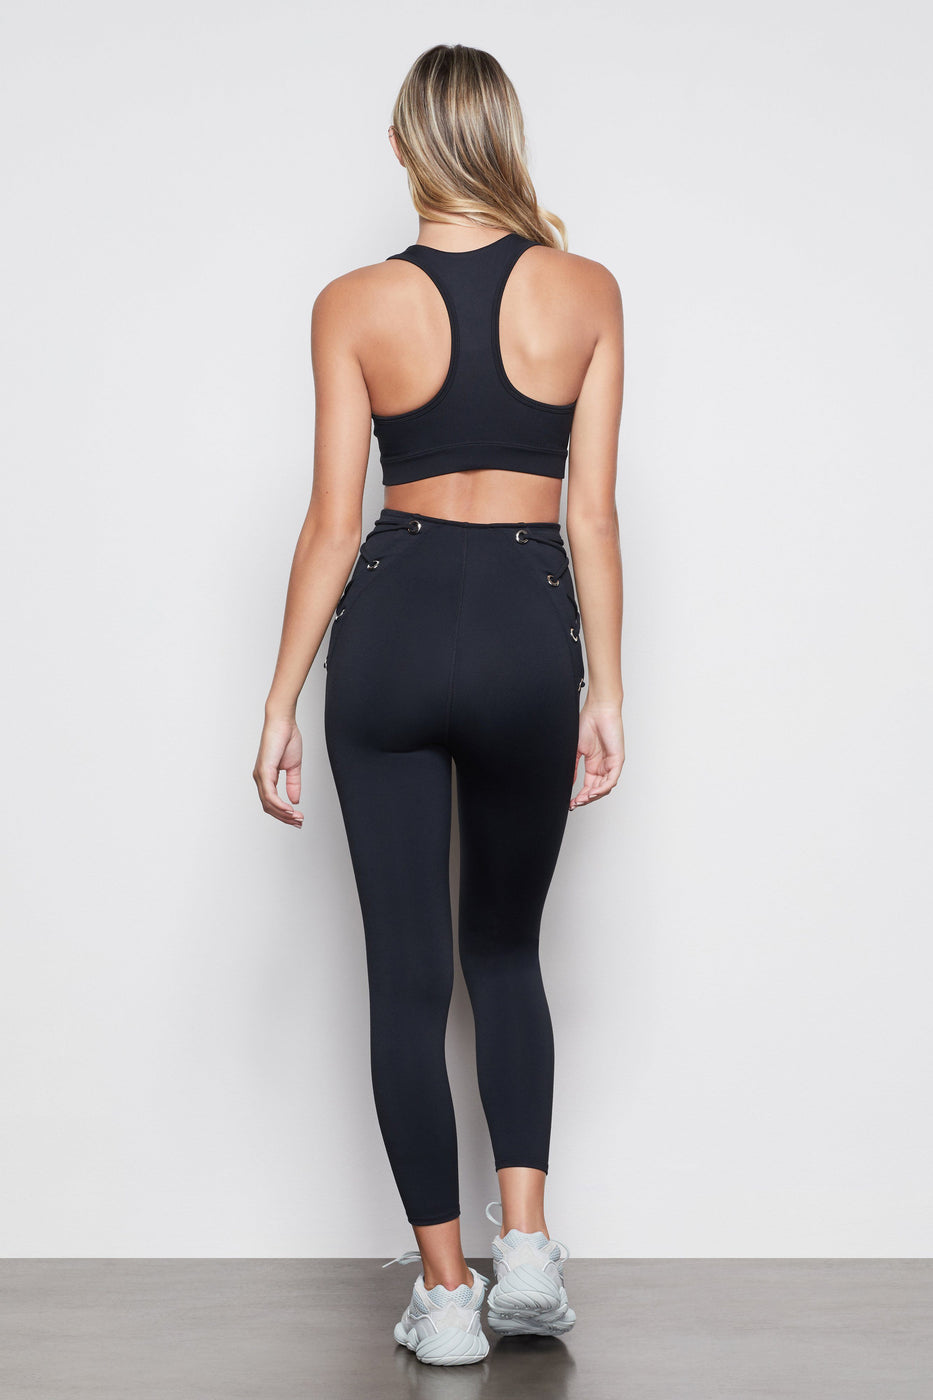 THE ALL TIED UP 7/8 LEGGING | BLACK001